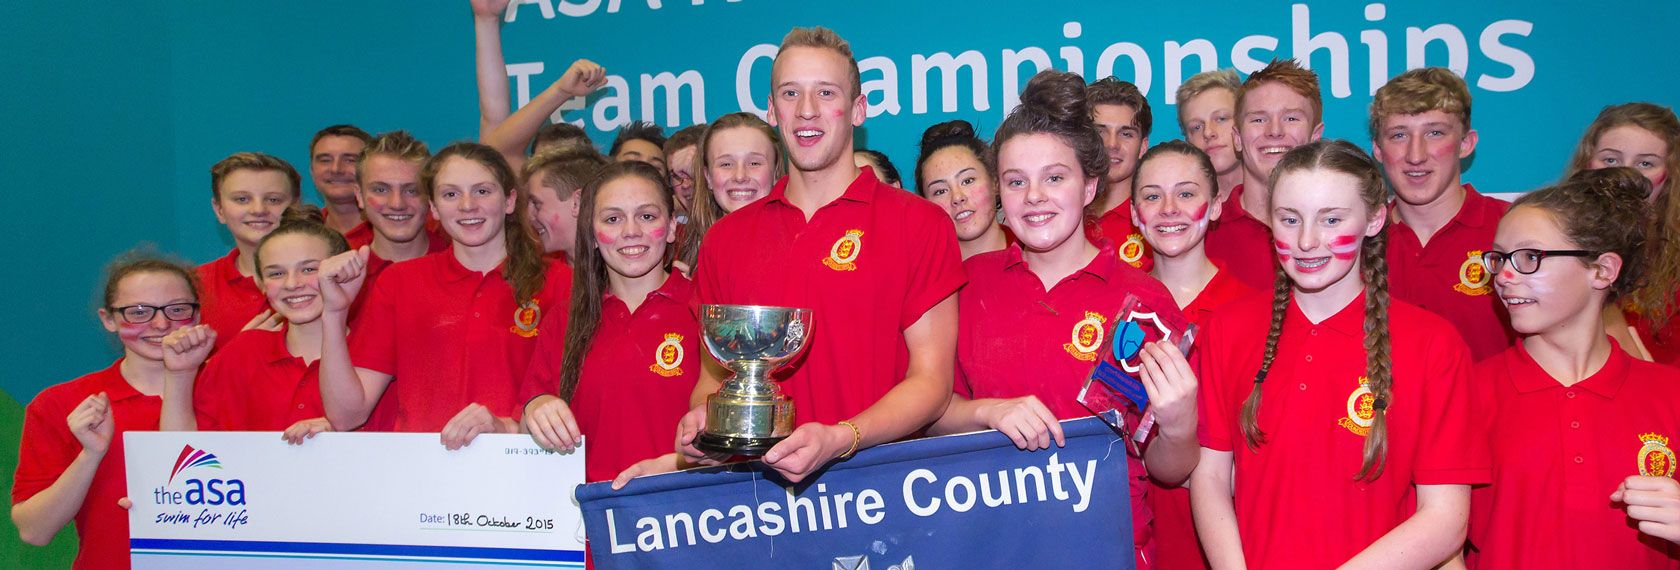 lancashire_win_2015_county_team_champs.jpg